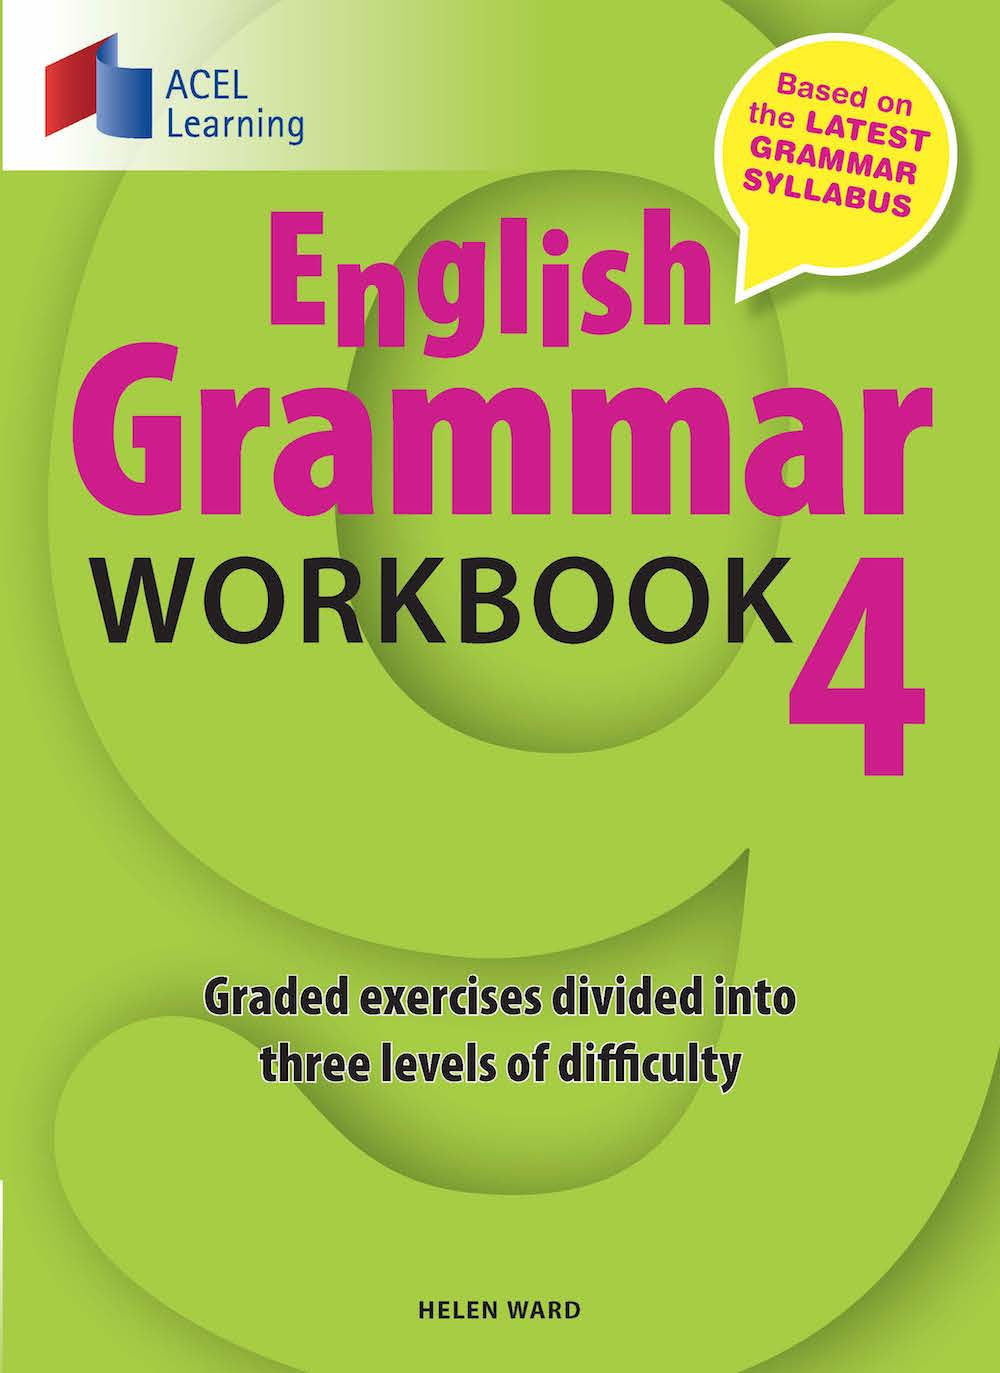 English Grammar Workbook 4